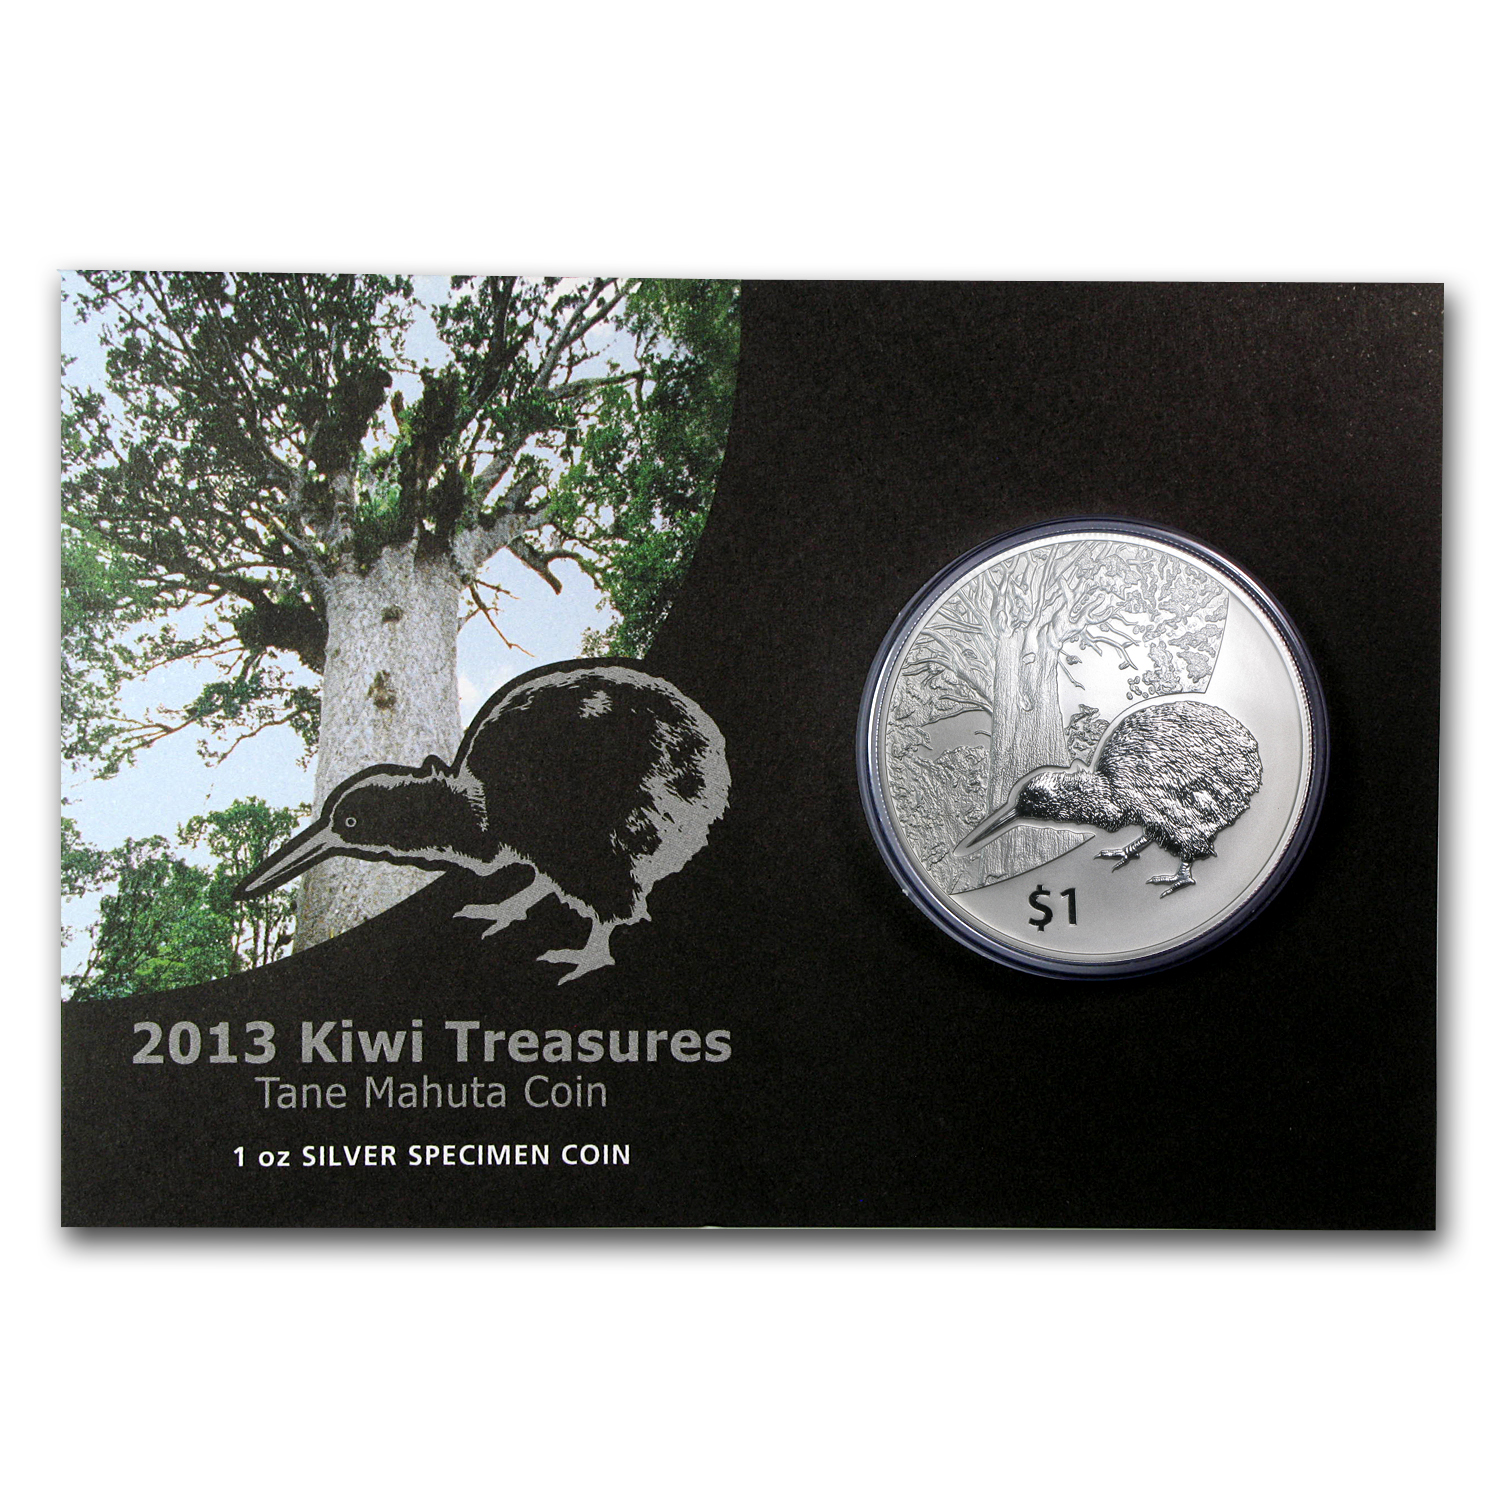 2013 1 oz Silver New Zealand Treasures $1 Kiwi Specimen